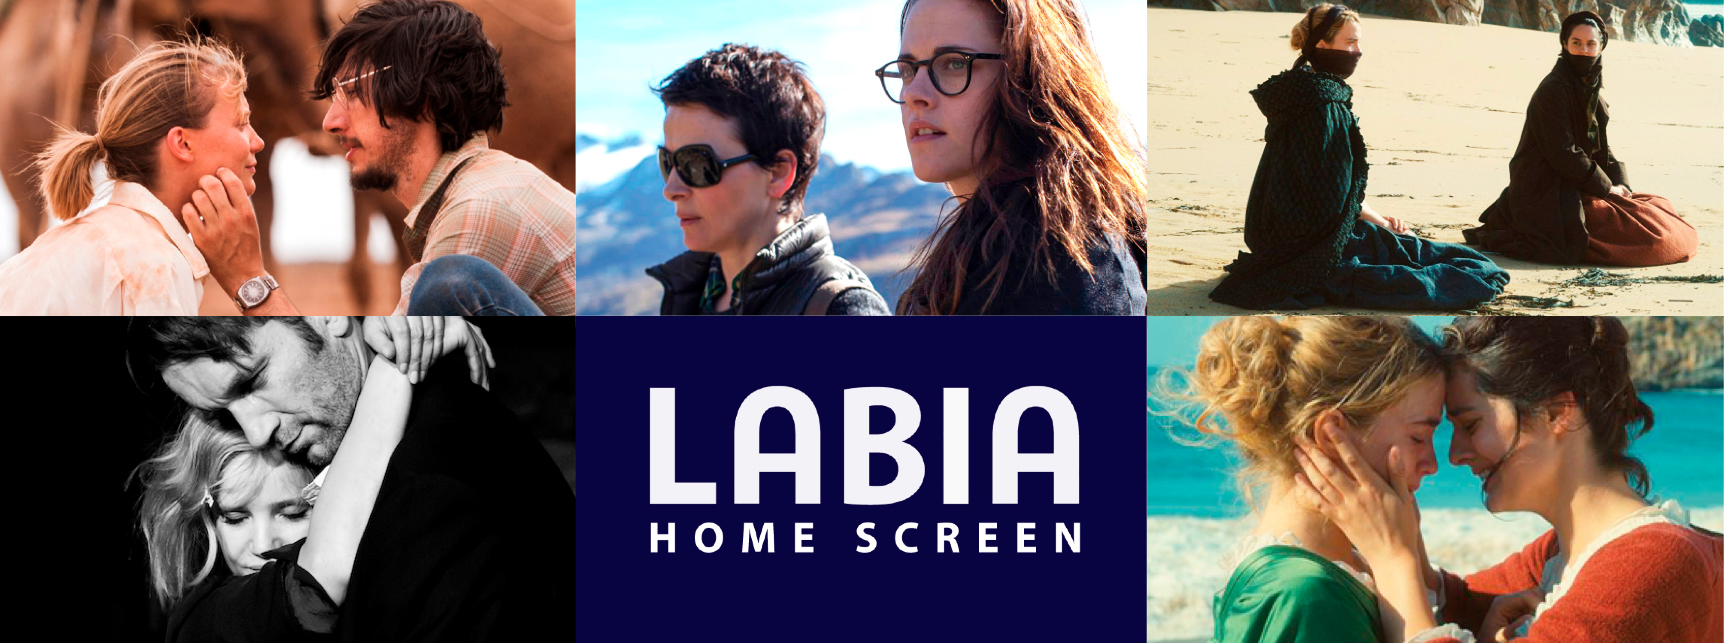 Labia Home Screen